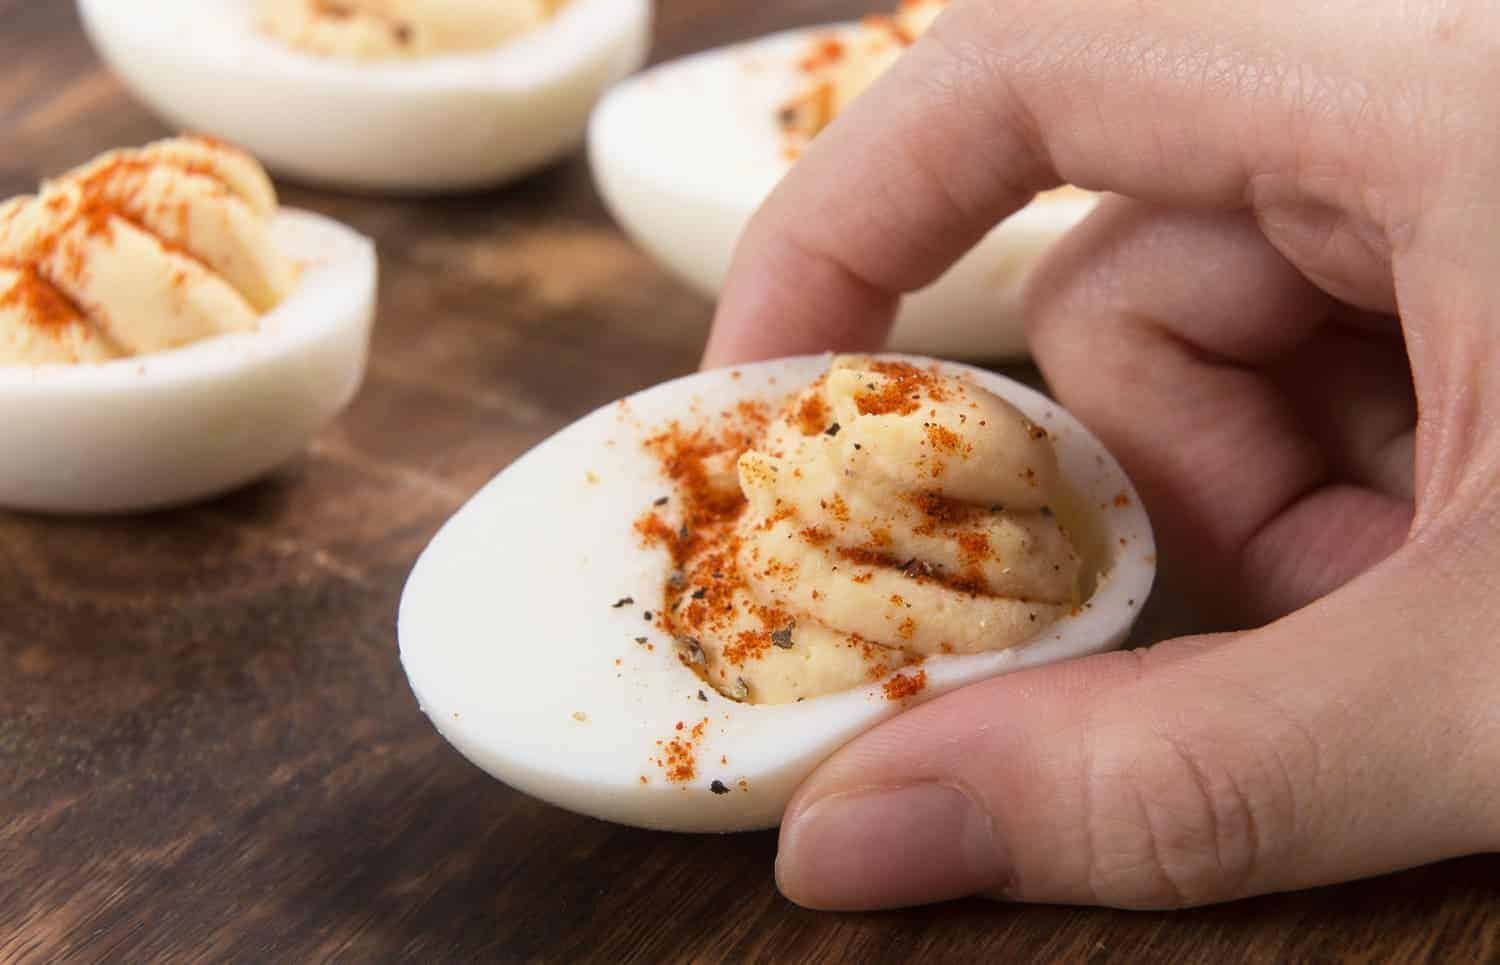 Instant Pot Deviled Eggs Recipe: Make creamy & rich Easy Deviled Eggs with a tad spicy twist! Our crowd-pleasing go-to party appetizer. Budget-friendly, simple & delicious.